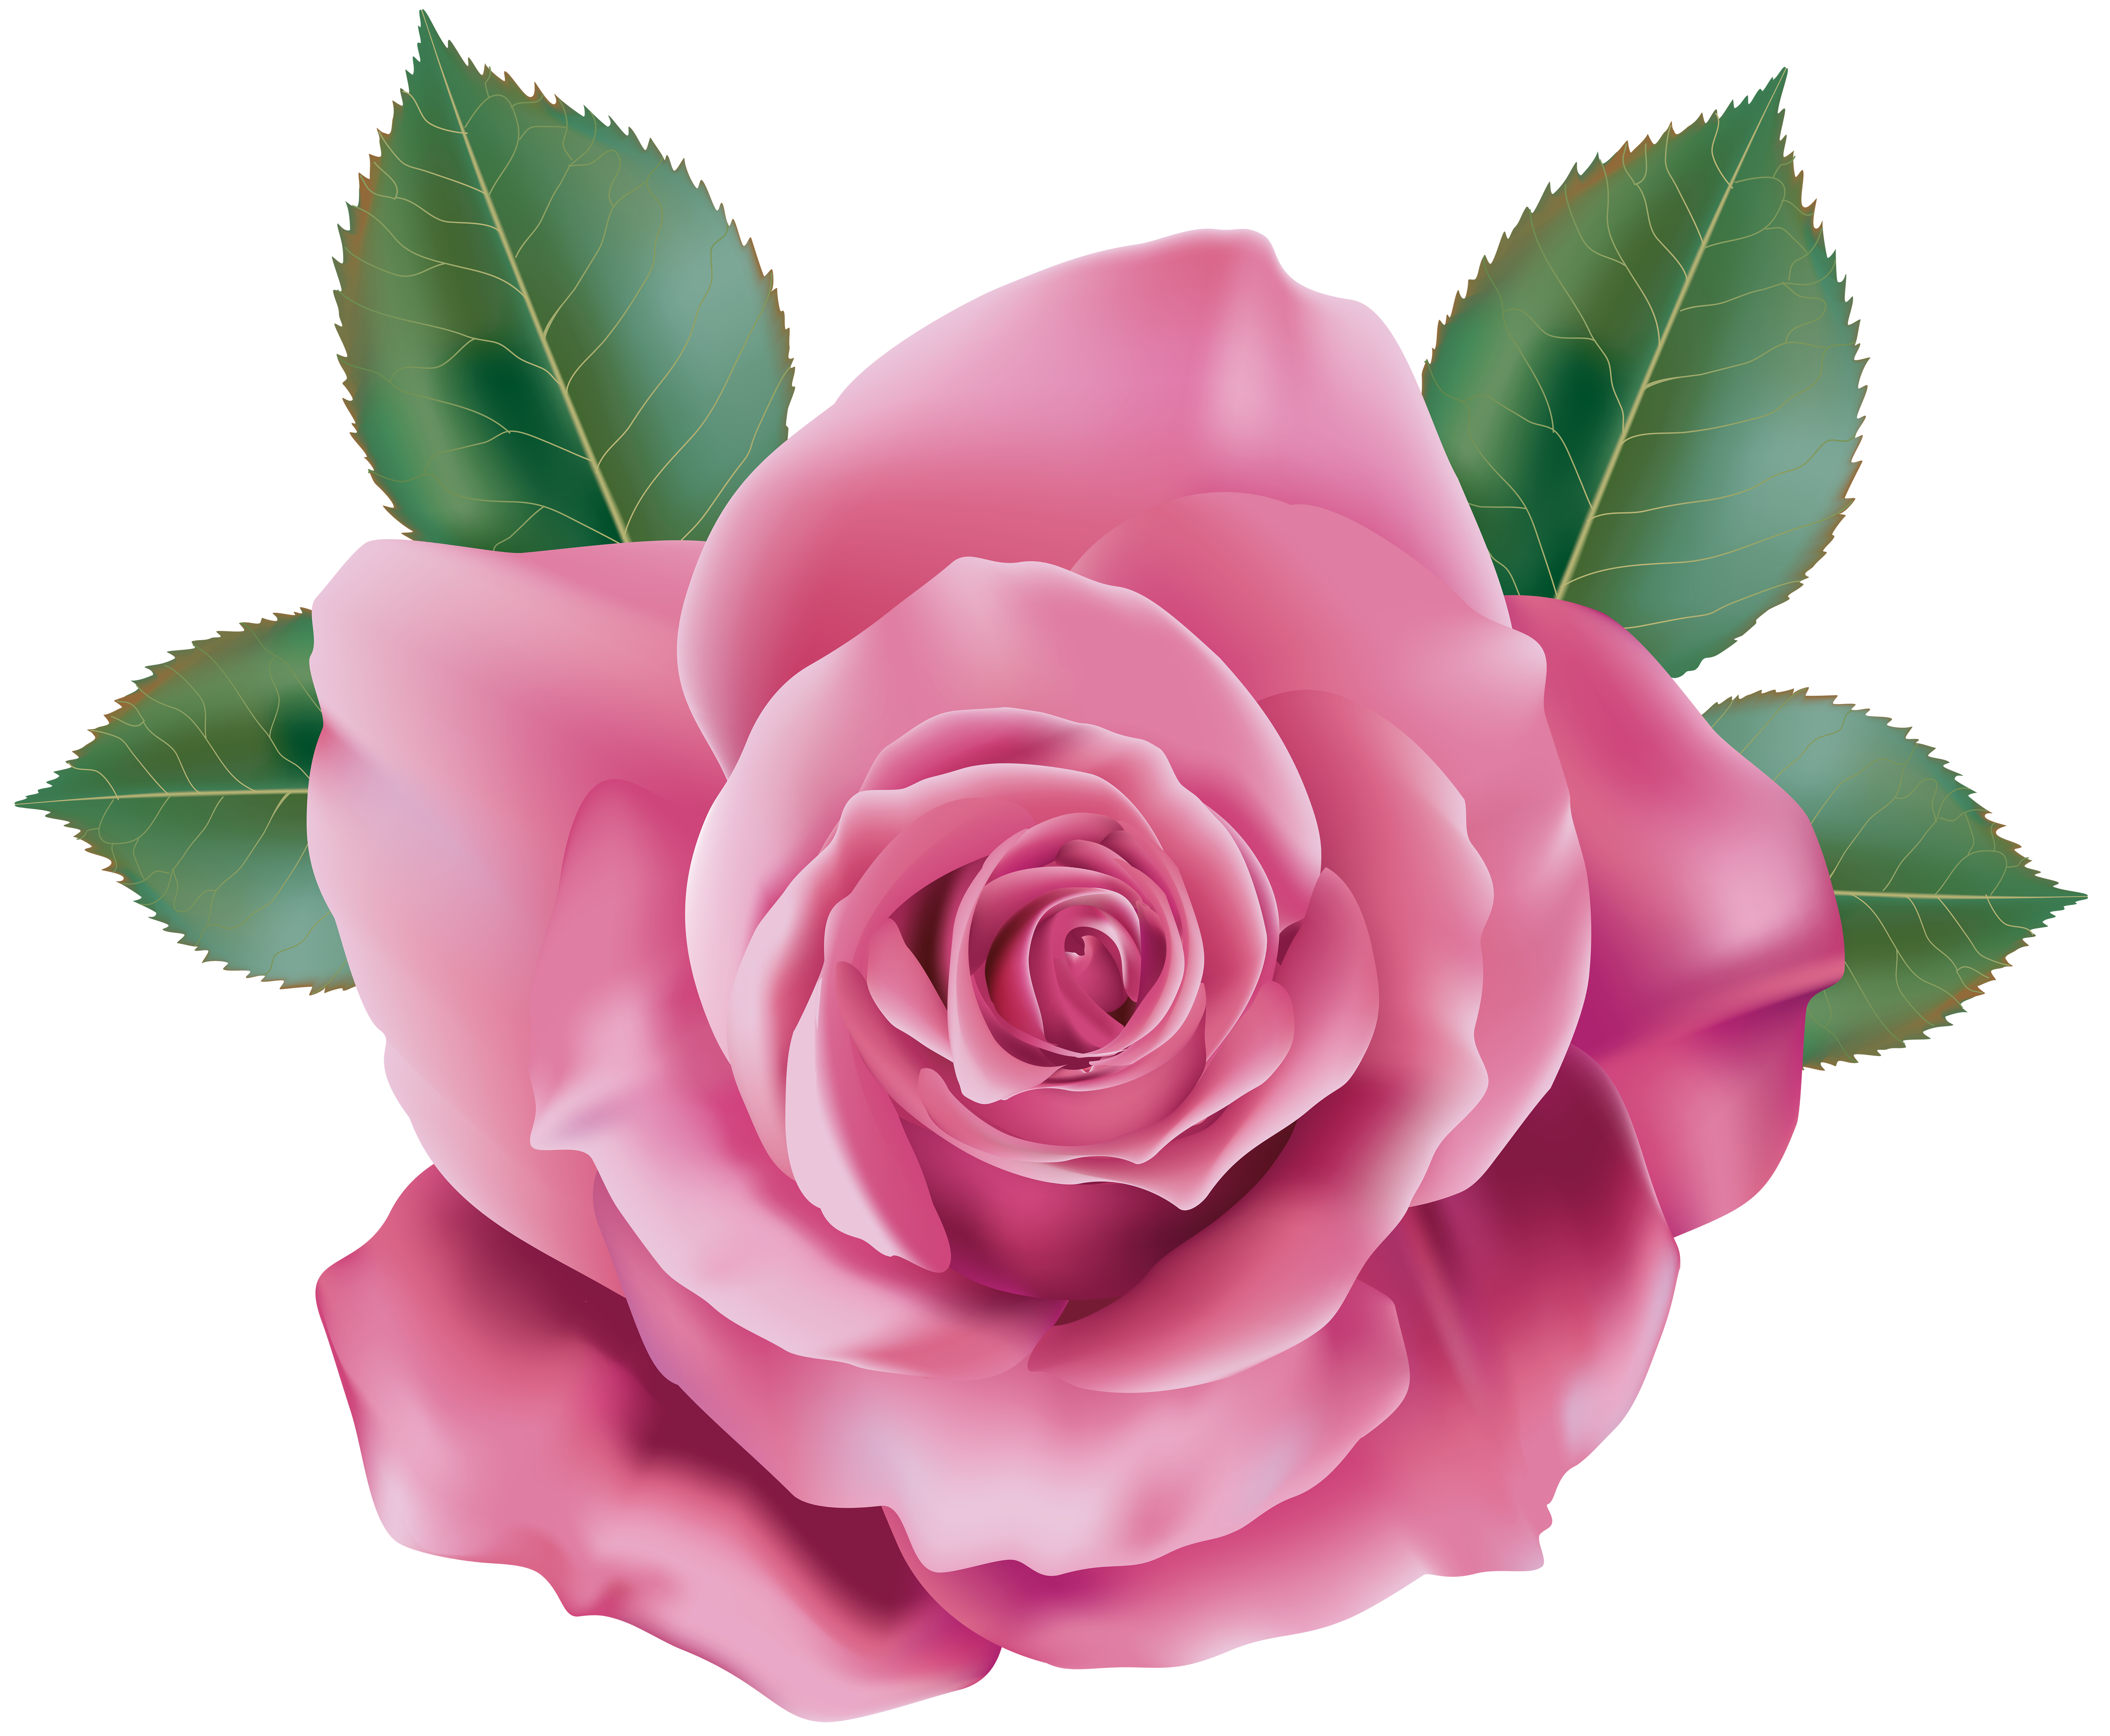 Moana clipart shoeflower. Pink rose transparent png